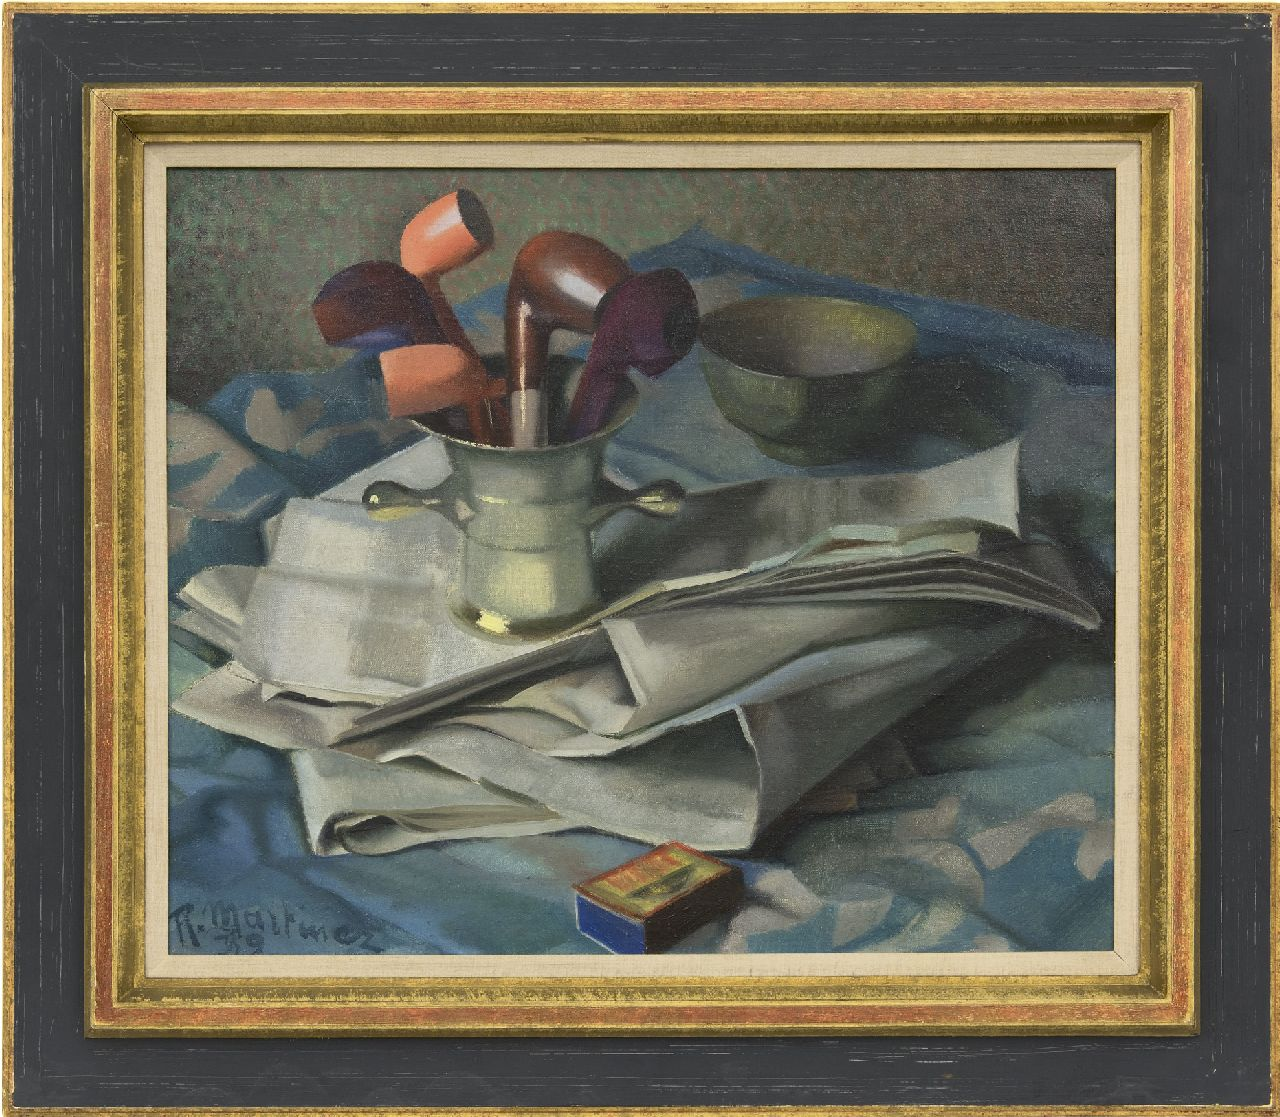 Martinez R.  | Raoul Martinez | Paintings offered for sale | Still life with mortar, pipes and a newspaper, oil on canvas 46.2 x 55.3 cm, signed l.l. and dated '39